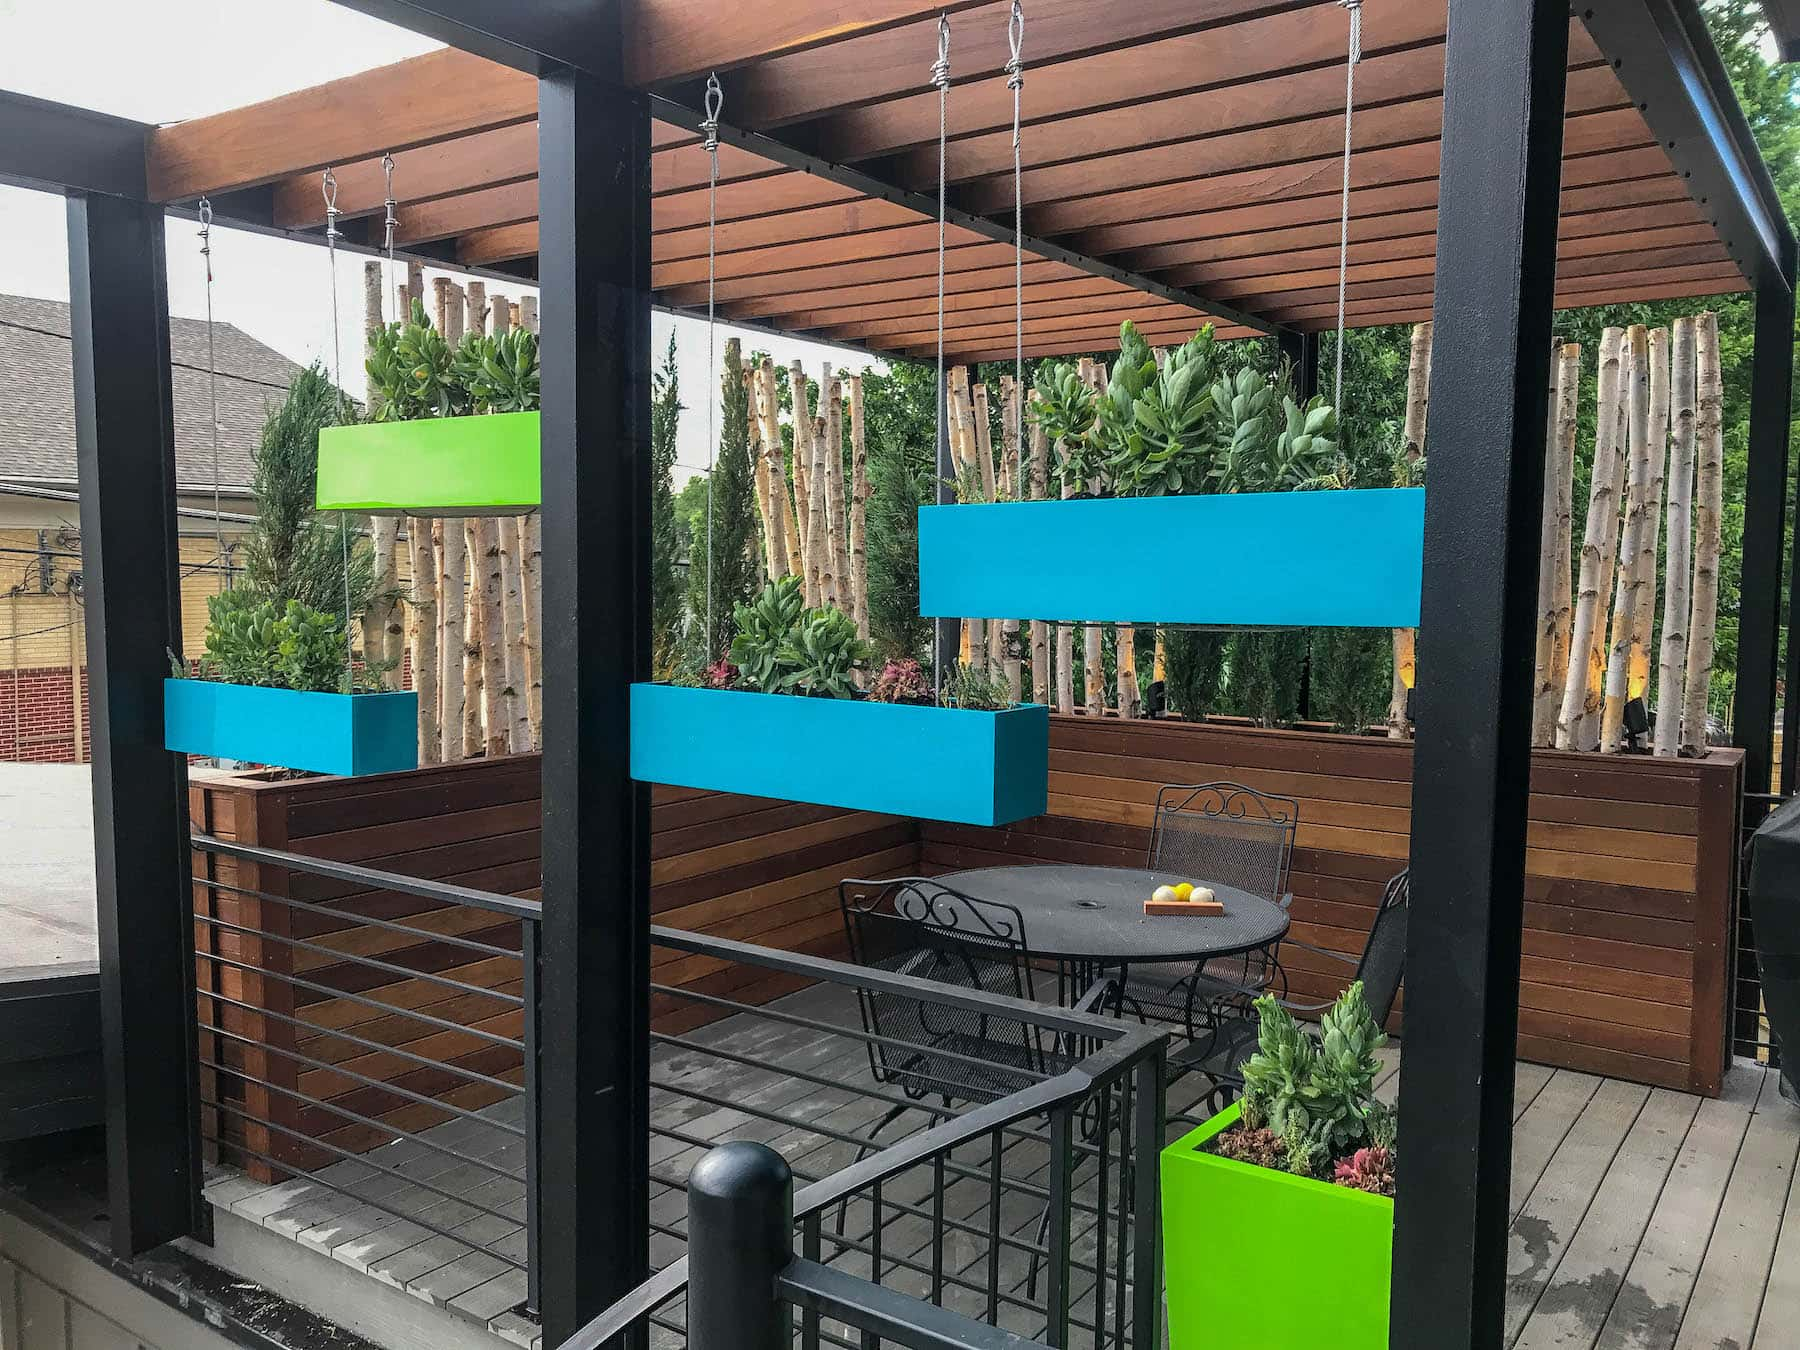 Hanging Planters and Pergola